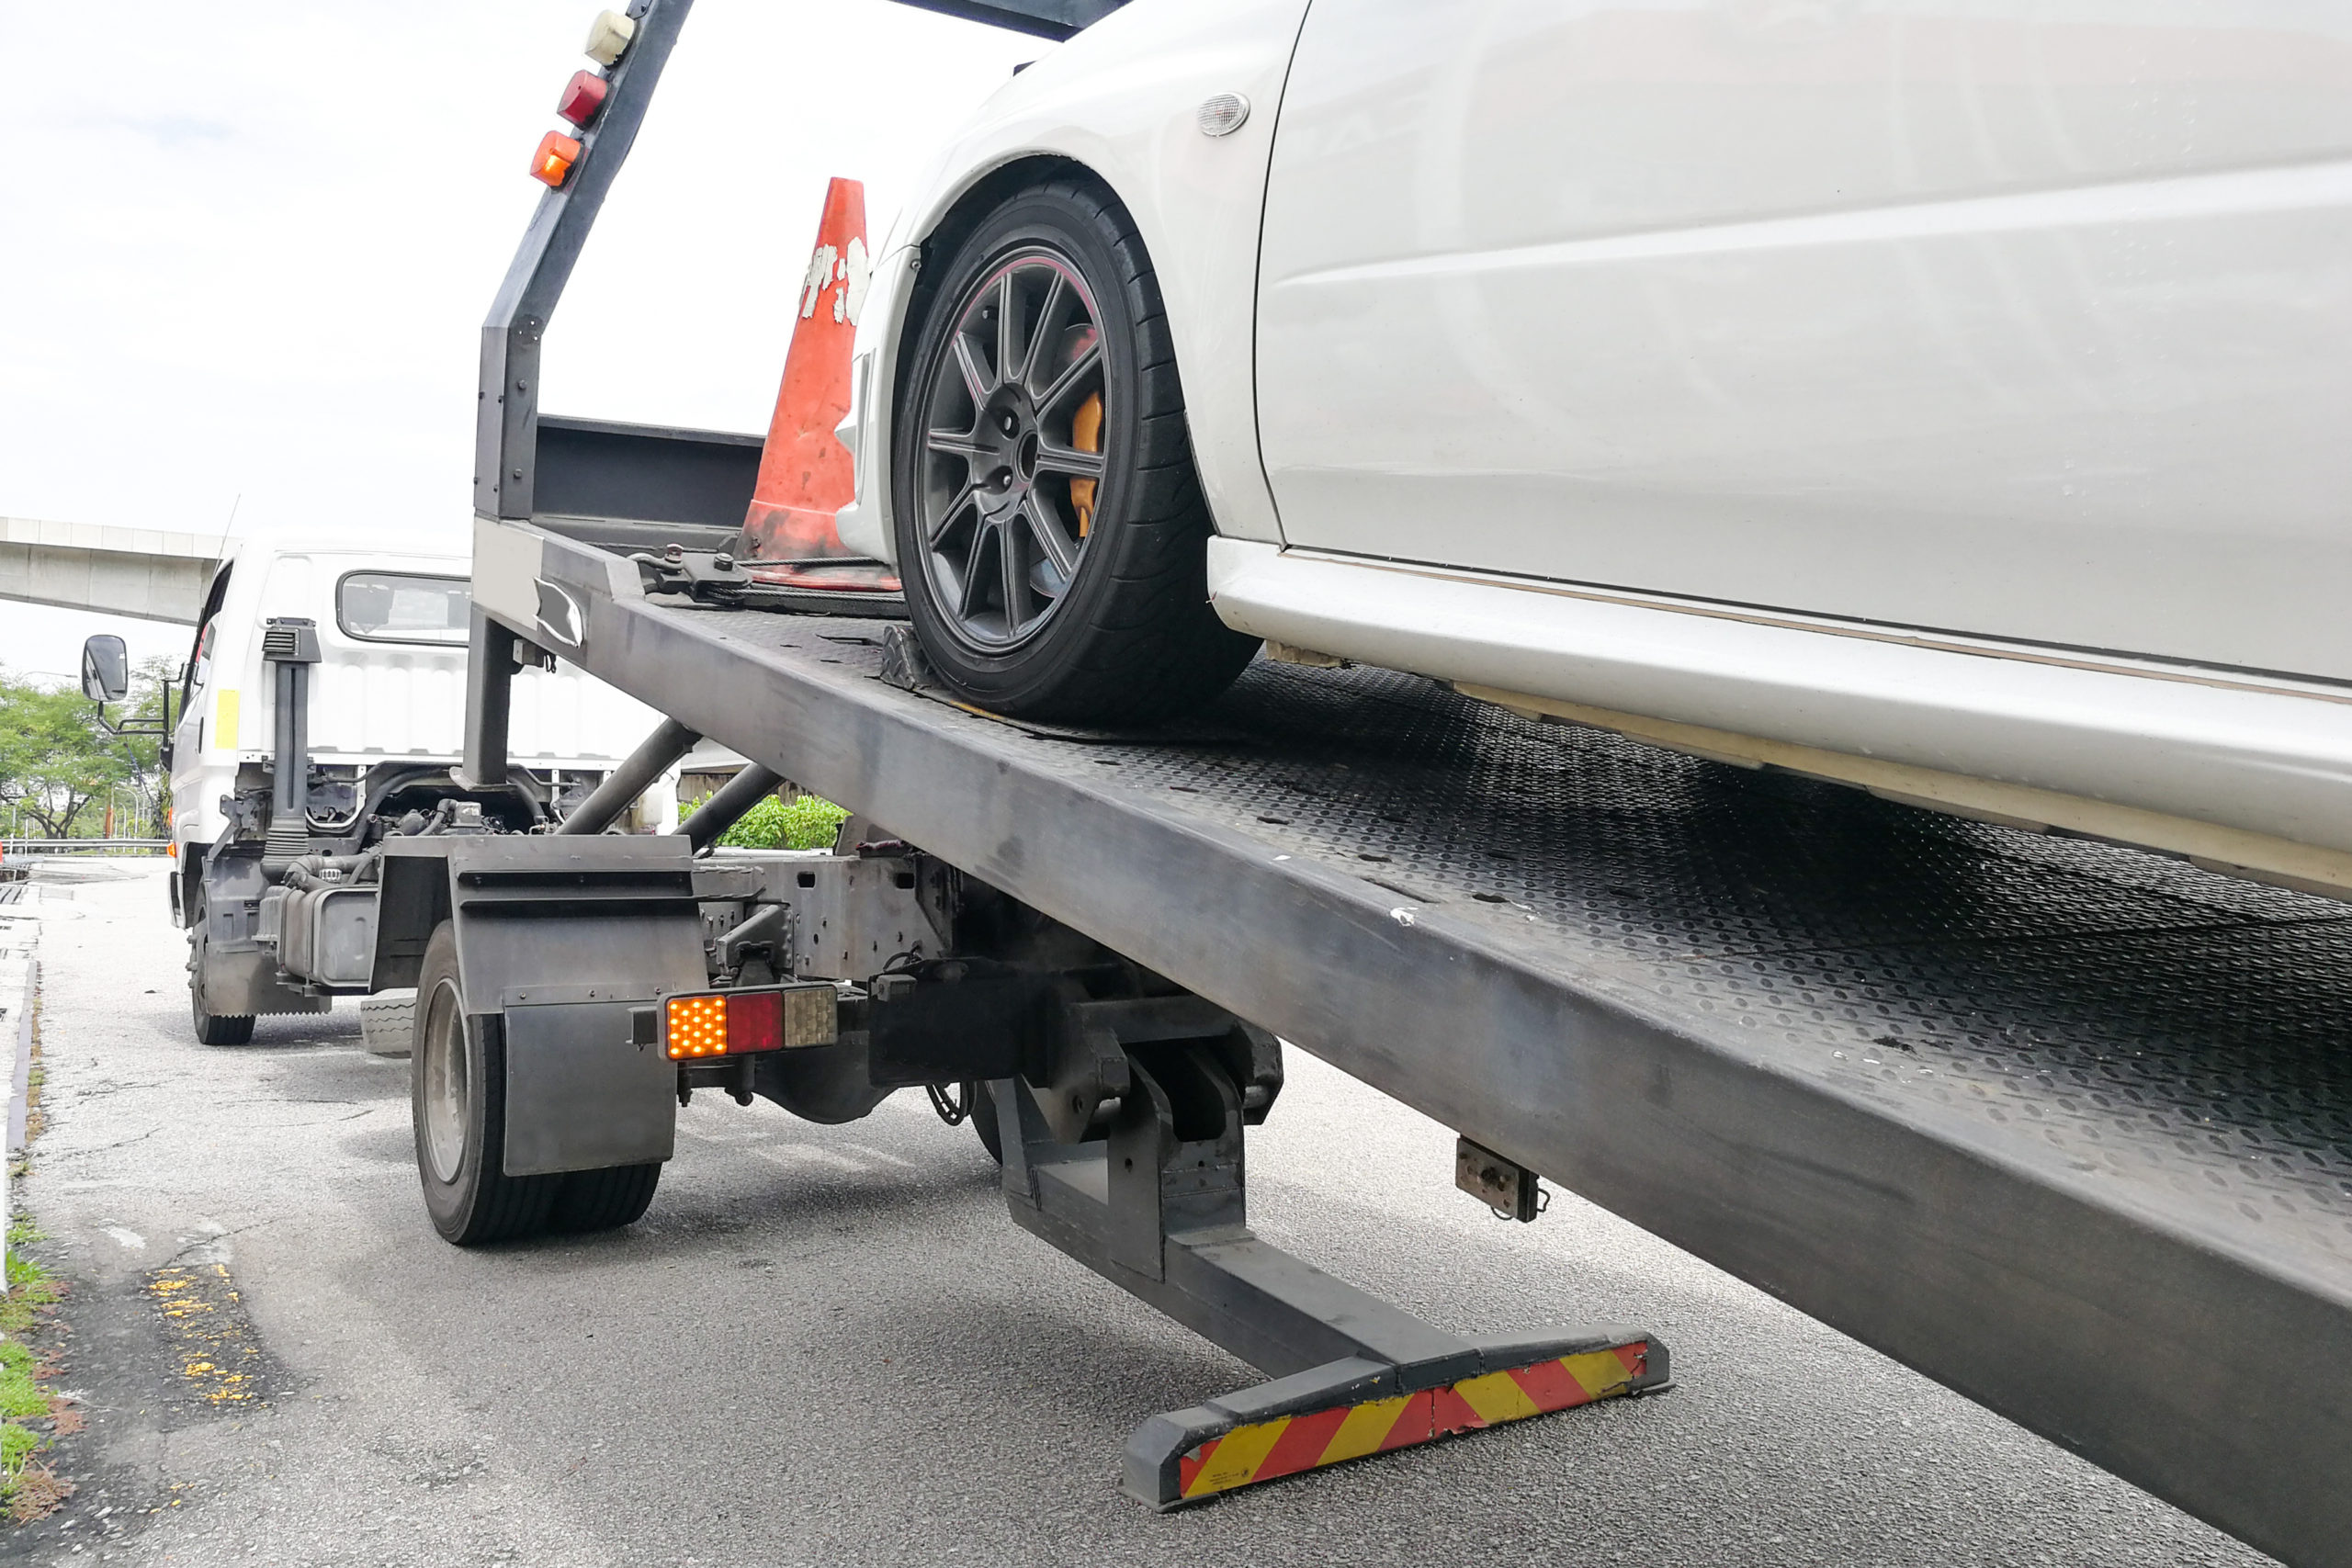 Perry Hall Auto Tire Center Towing Service